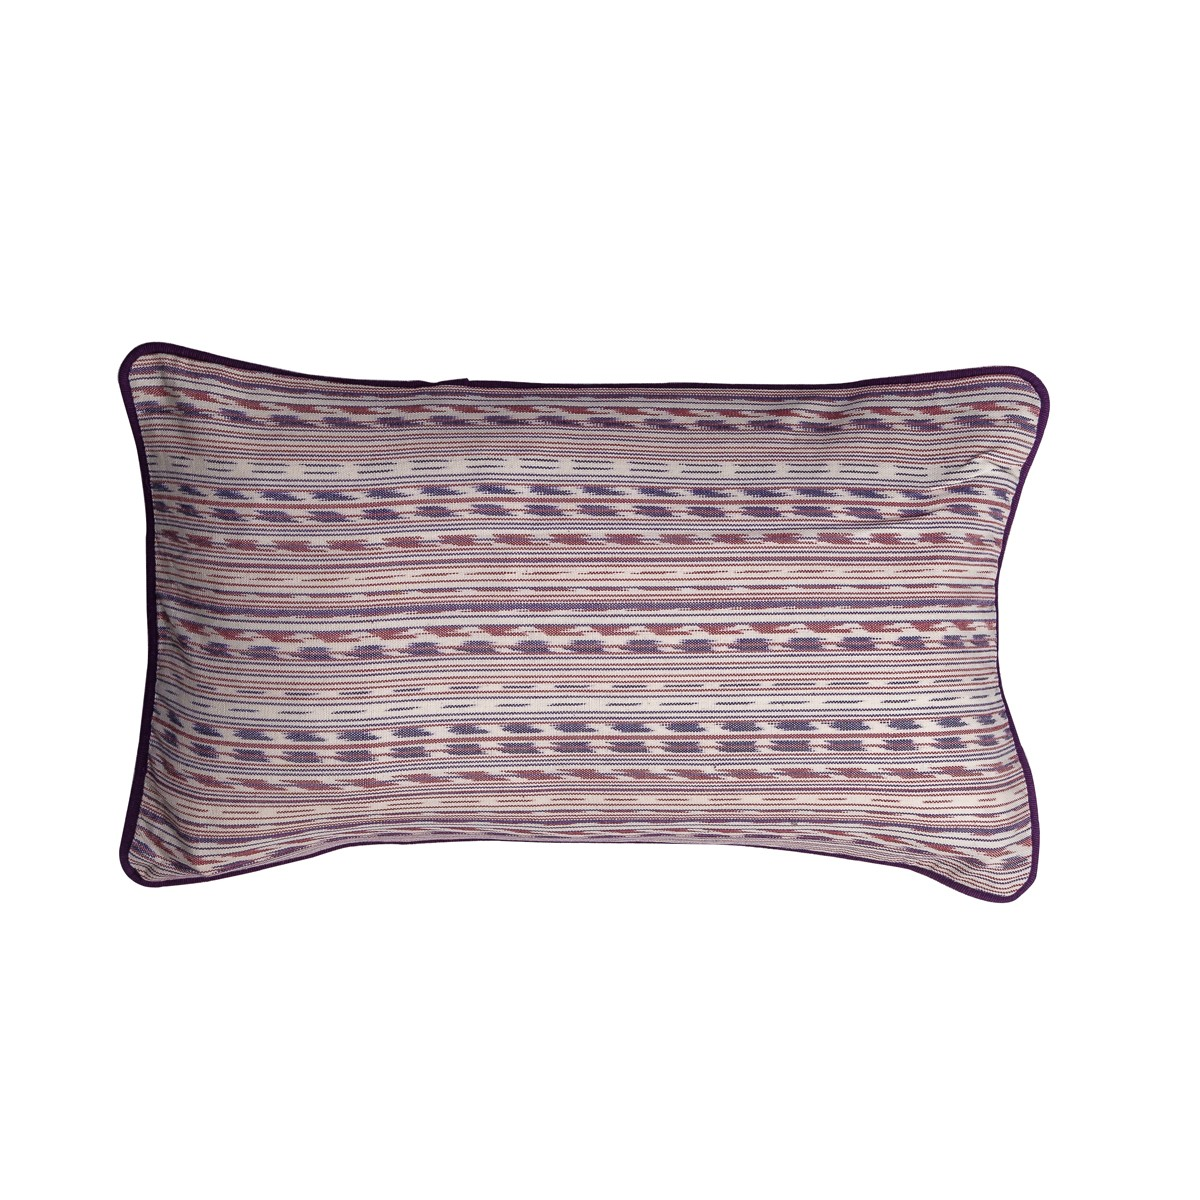 Purple patterned rectangle cushion cover with piping buy designer scatter sofa cushion covers